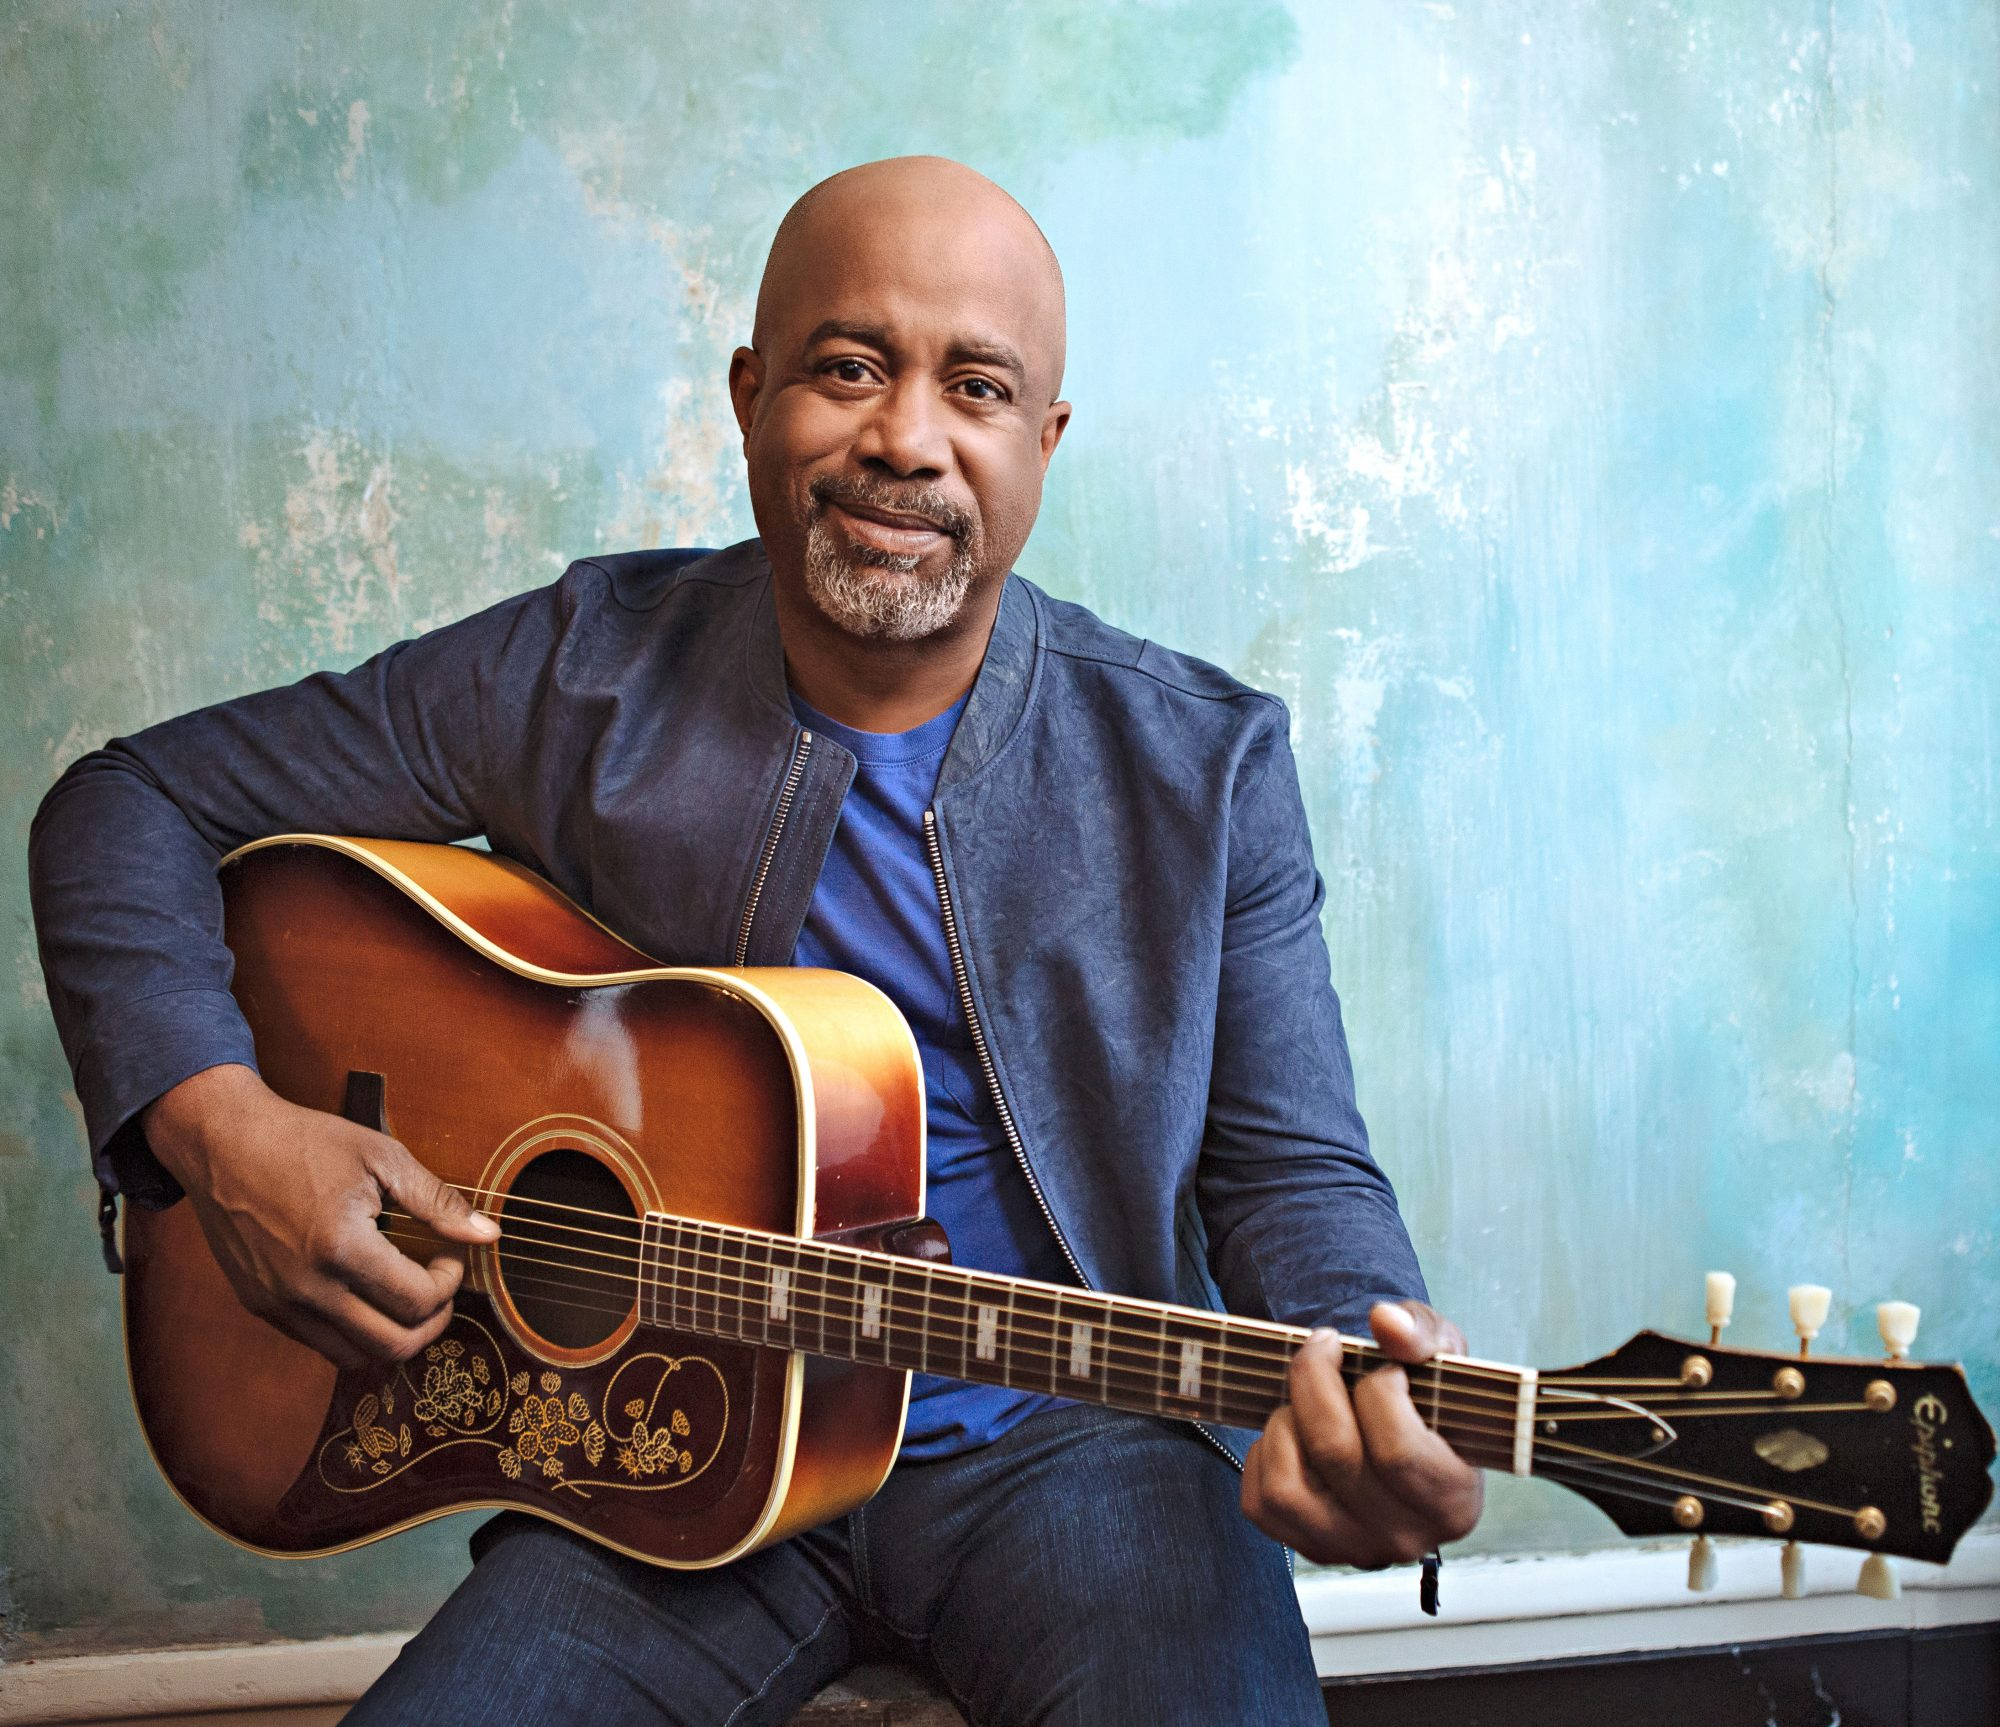 Darius Rucker playing guitar